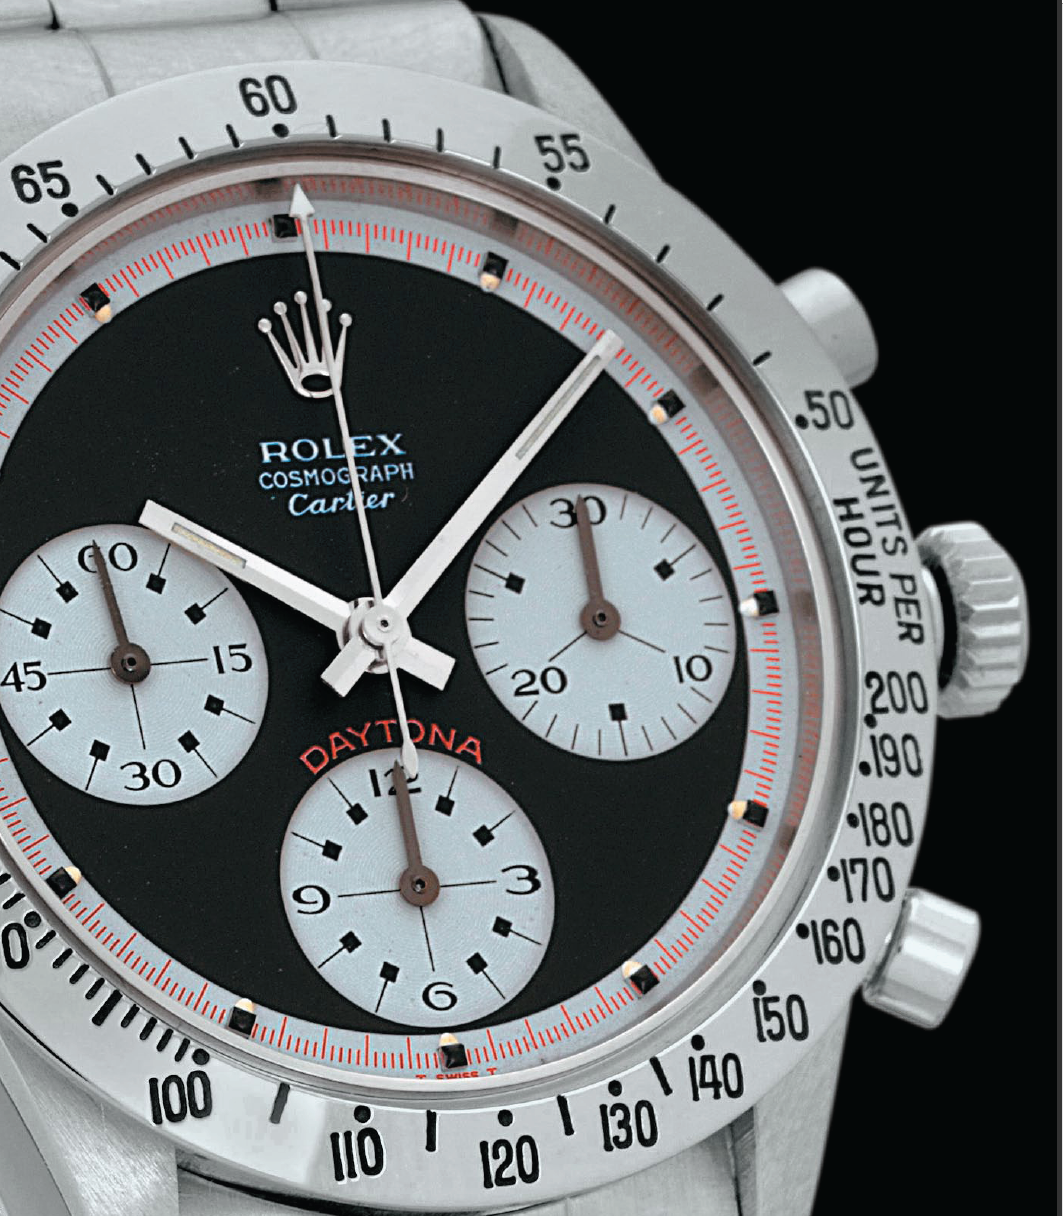 """FROM """"TOTAL ROLEX"""" An essential guide for knowing the whole wonderful world of Rolex and safely collecting modern and vintage watches. http://www.mondanionline.com/total_rolex-17.php"""